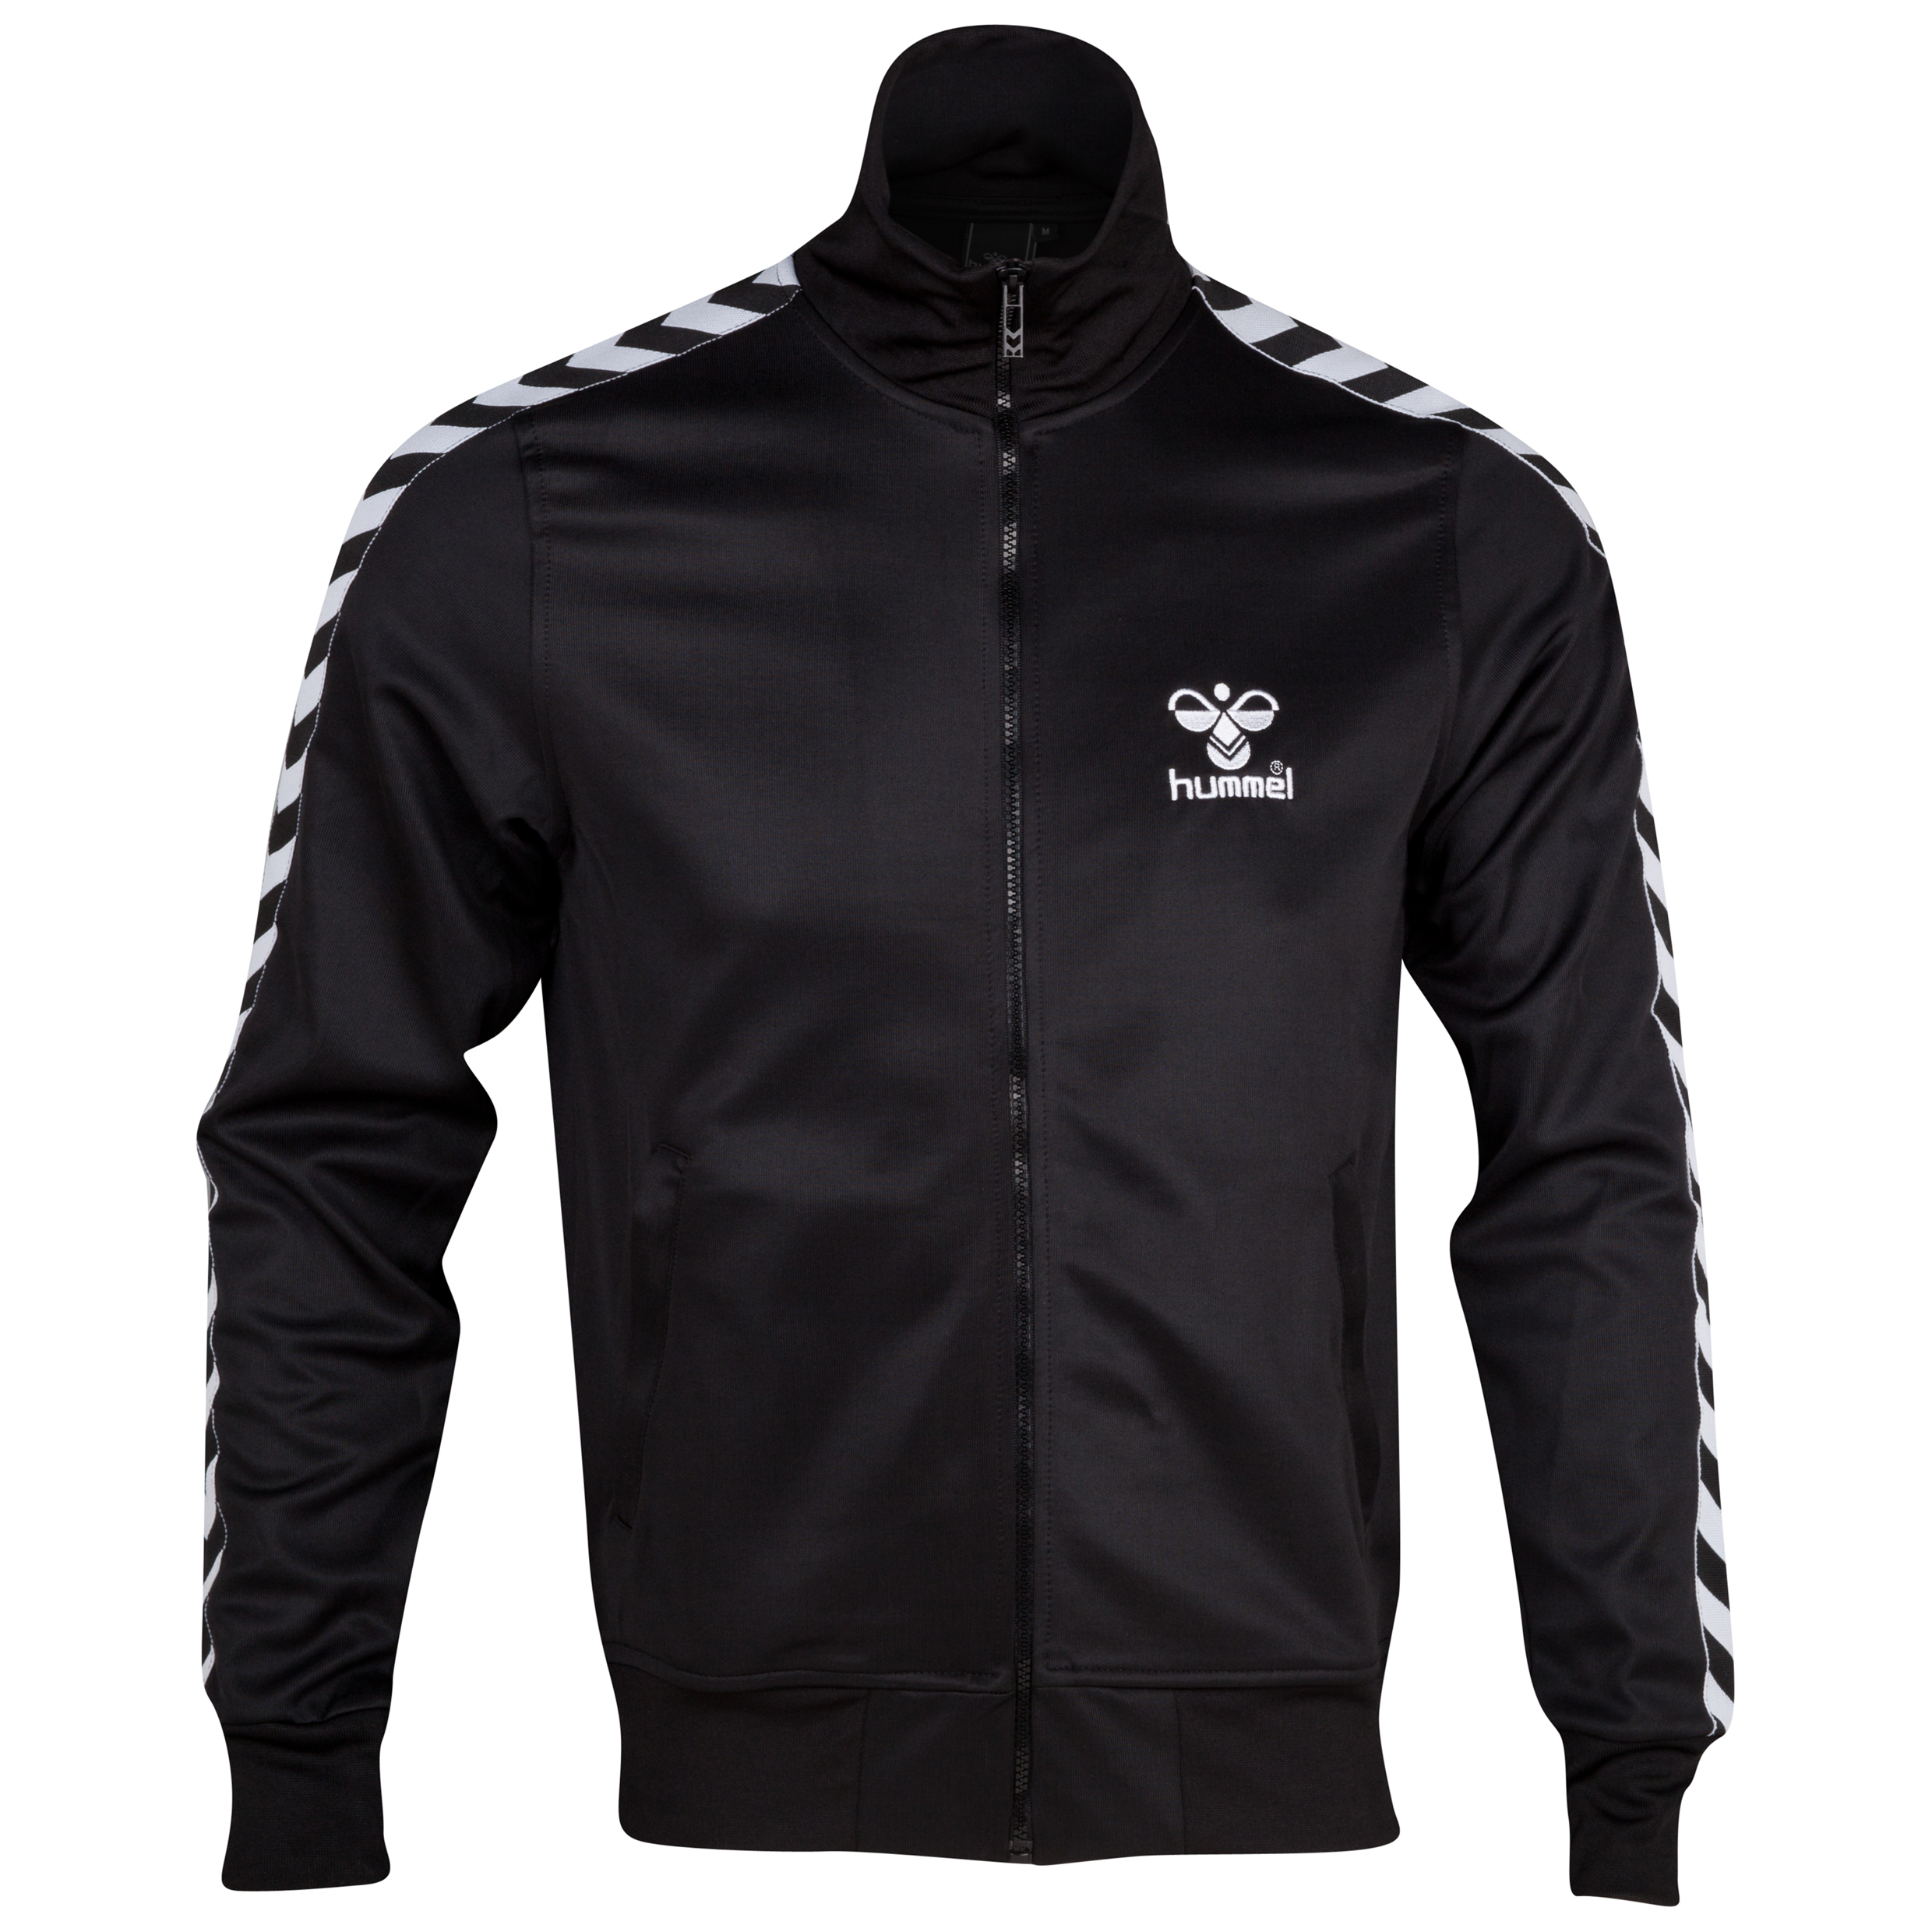 Hummel Atlantic Zip Track Jacket - Black/White